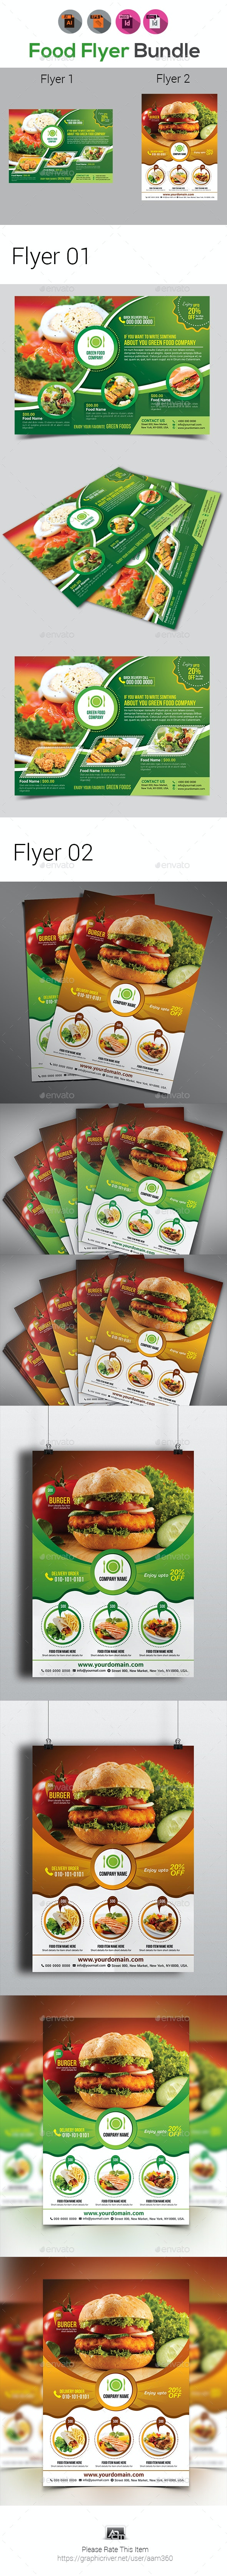 Food Flyer Templates - Restaurant Flyers